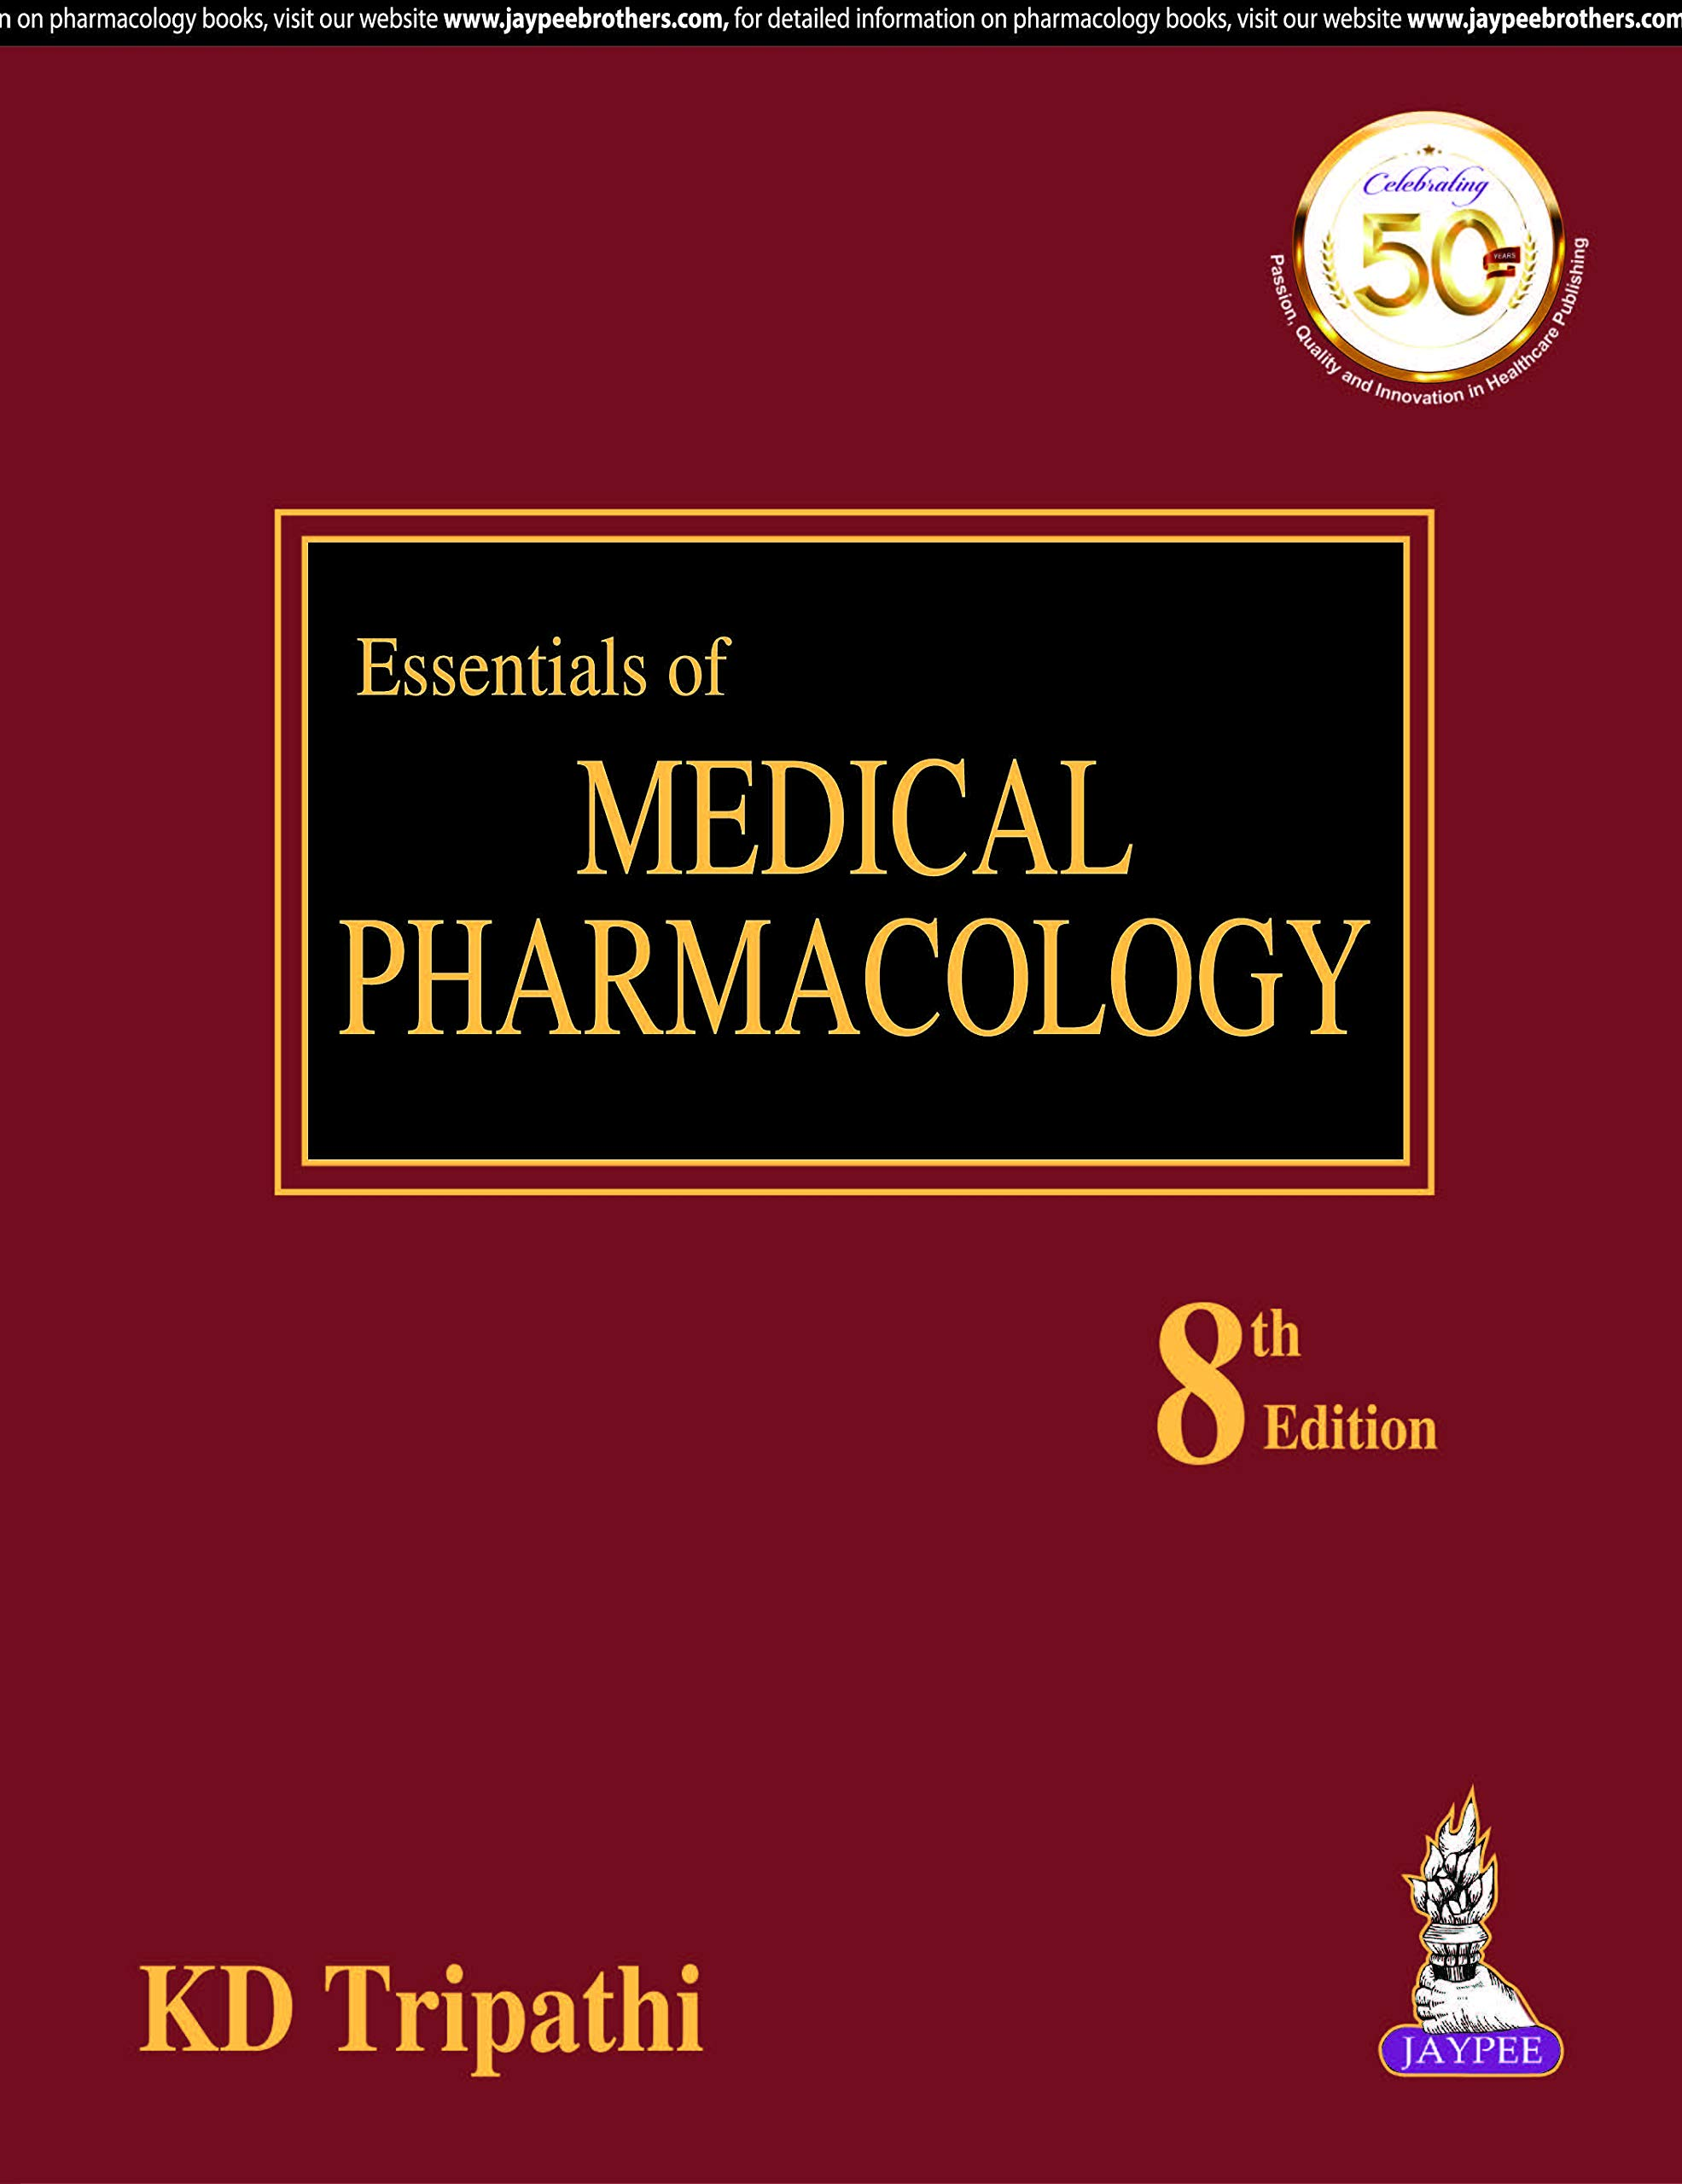 Buy Essentials of Medical Pharmacology Book Online at Low Prices in India |  Essentials of Medical Pharmacology Reviews & Ratings - Amazon.in